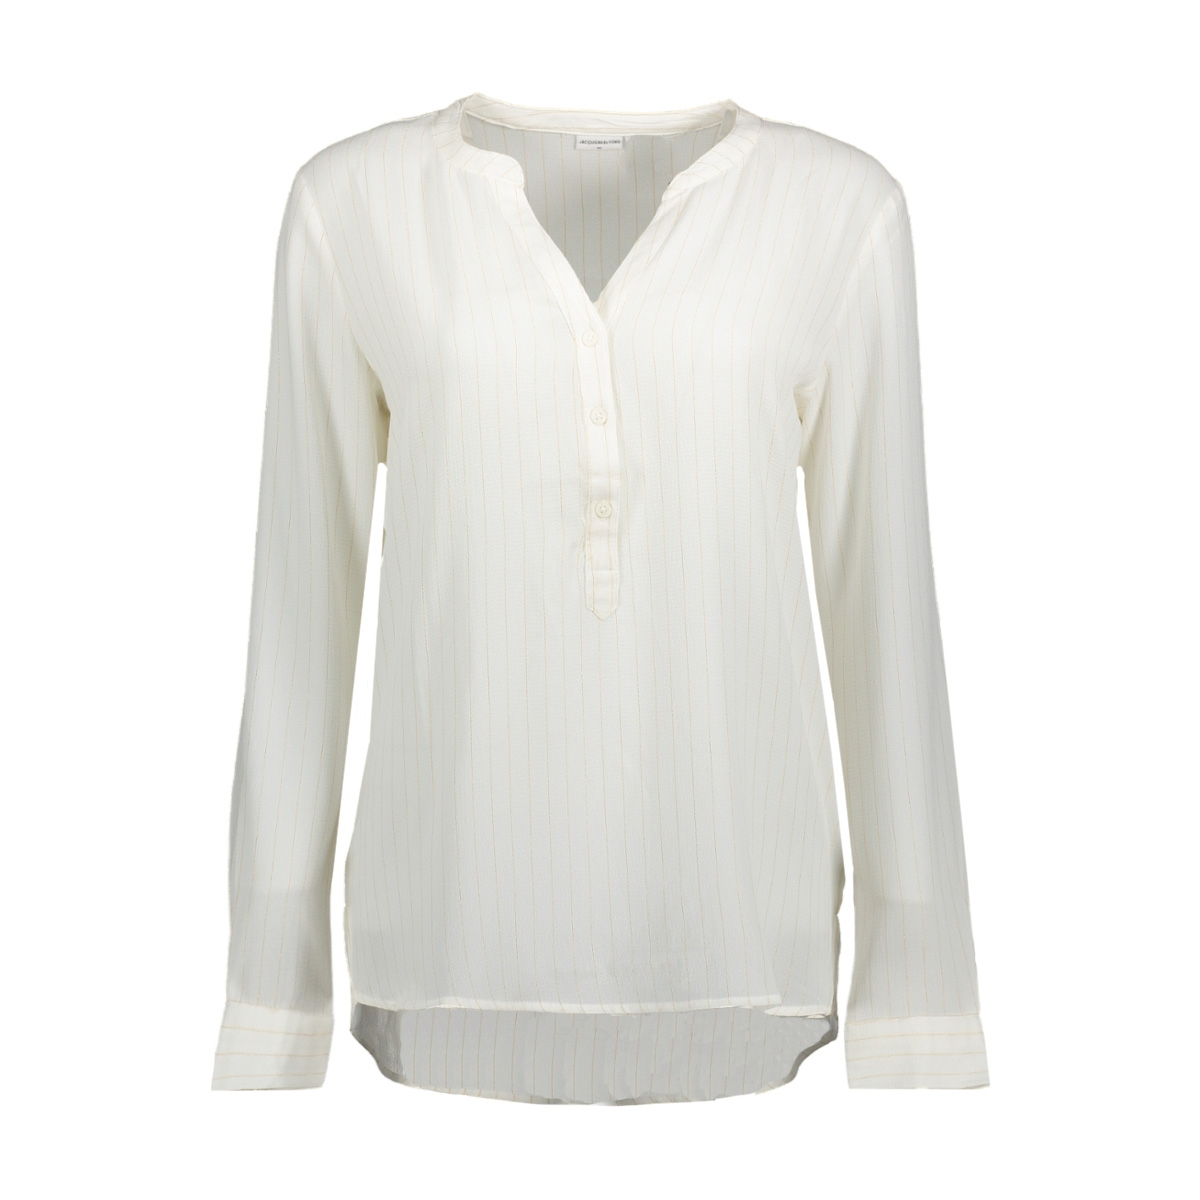 jdyserenity l/s placket top wvn 15142956 jacqueline de yong blouse cloud dancer/gold lurex